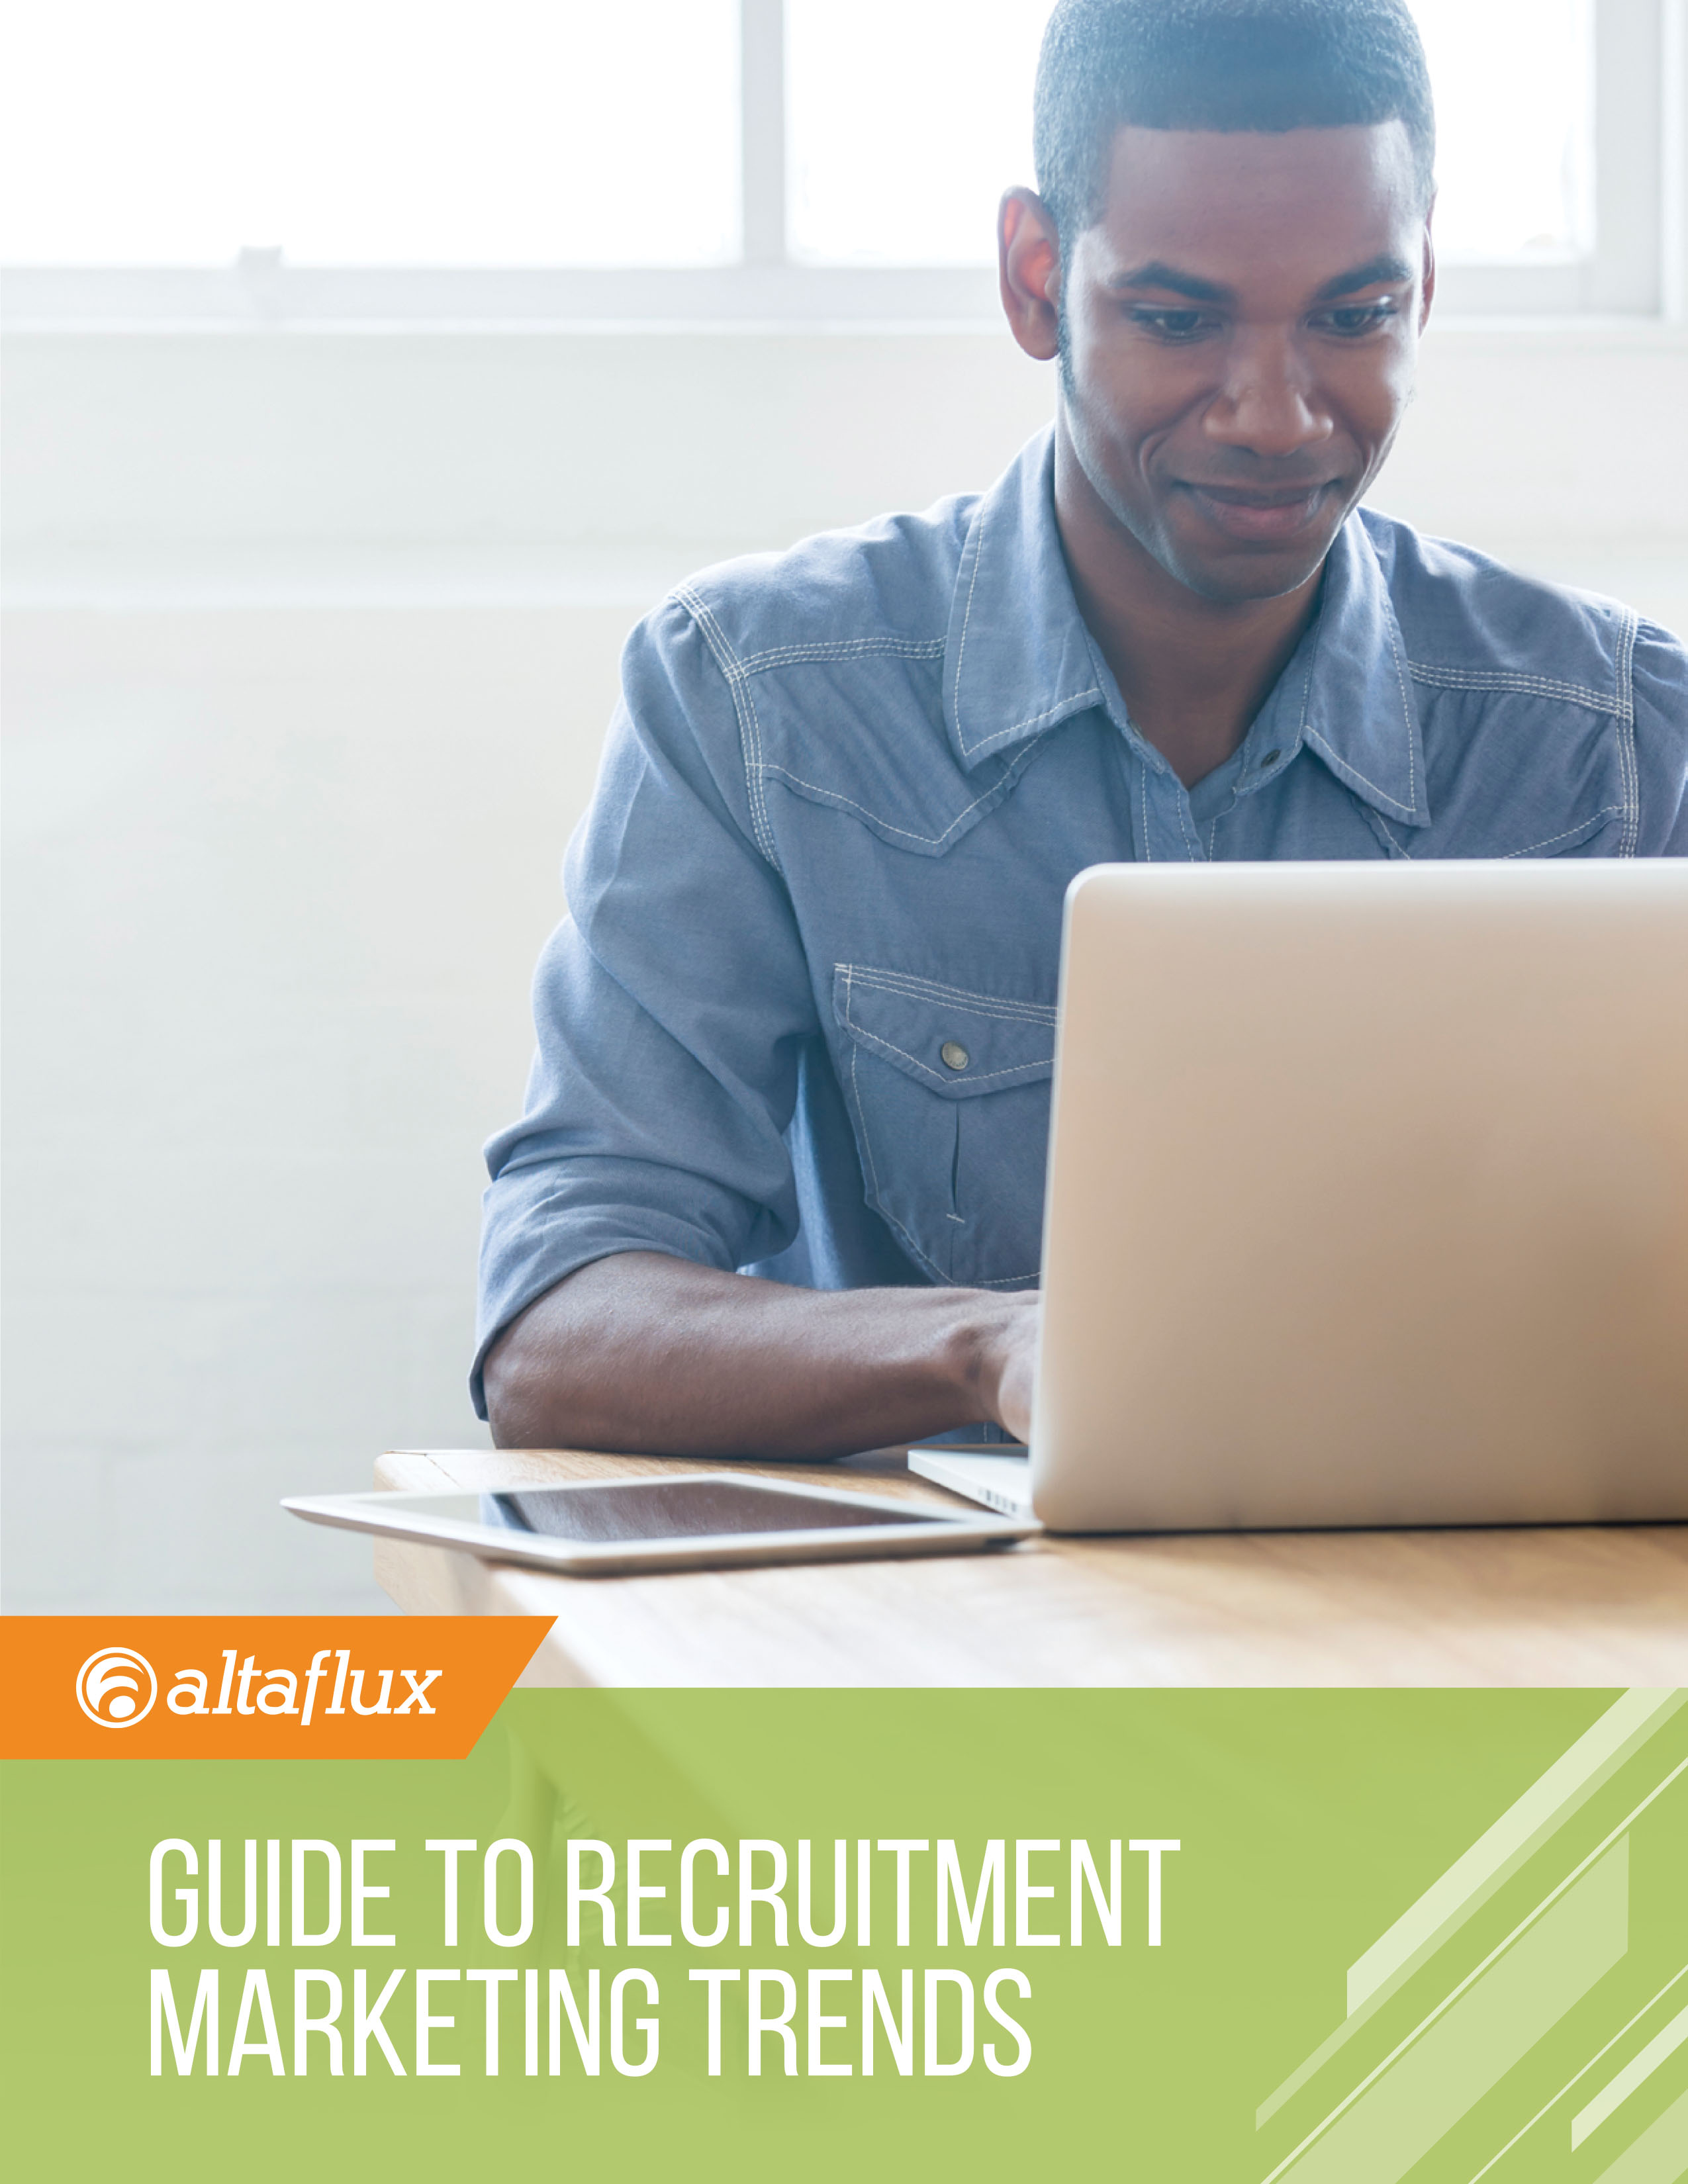 AltaFlux Guide to Recruiting Marketing Trends